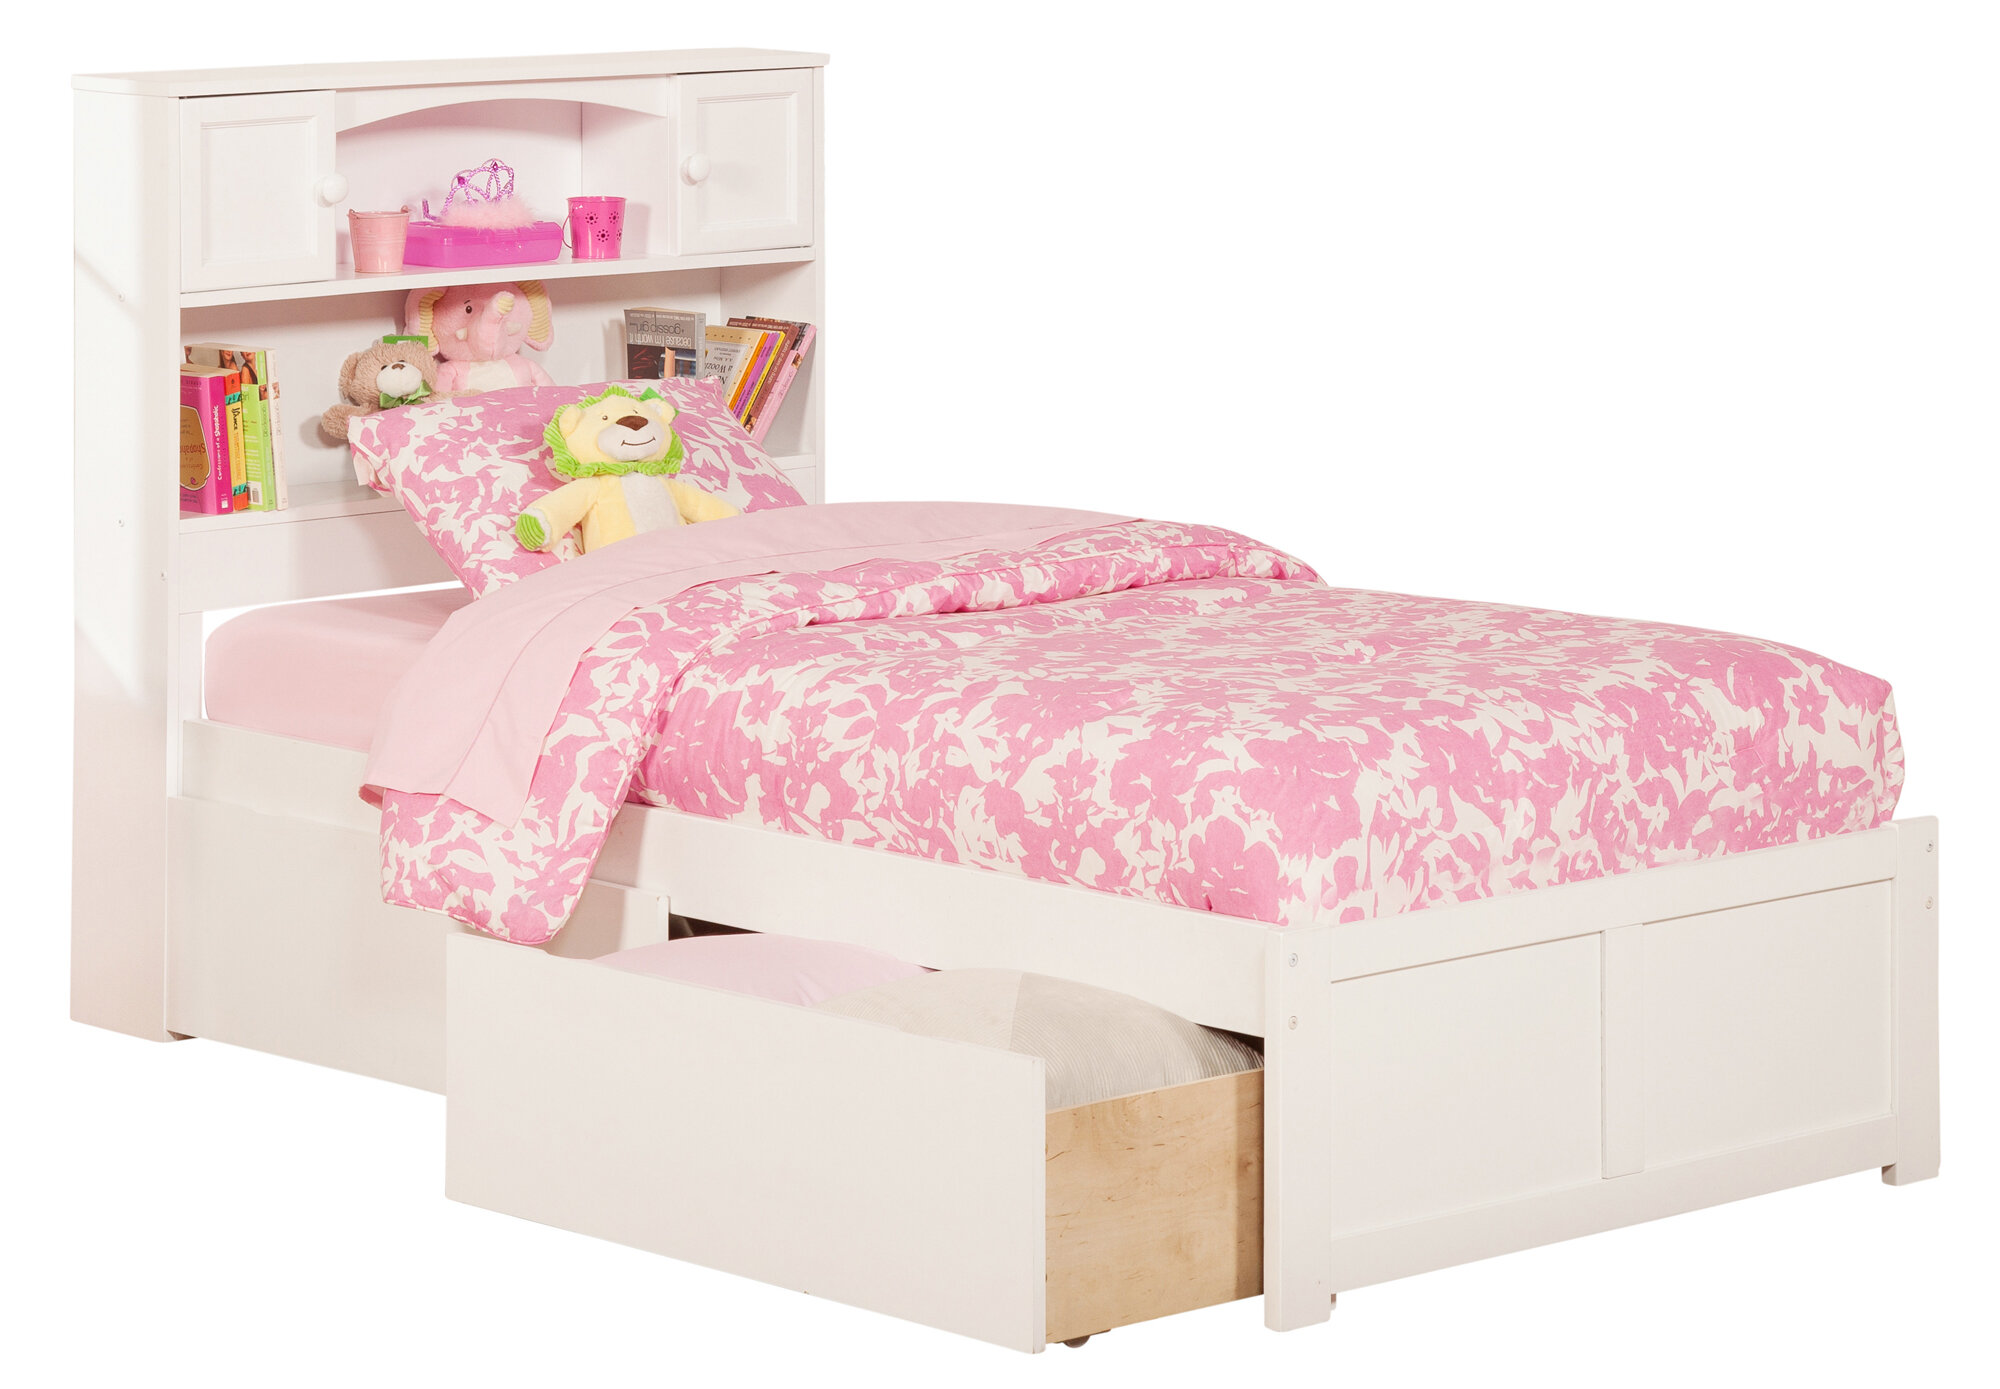 Atlantic furniture newport extra long twin platform bed with storage ebay - Extra long twin bed frame with storage ...